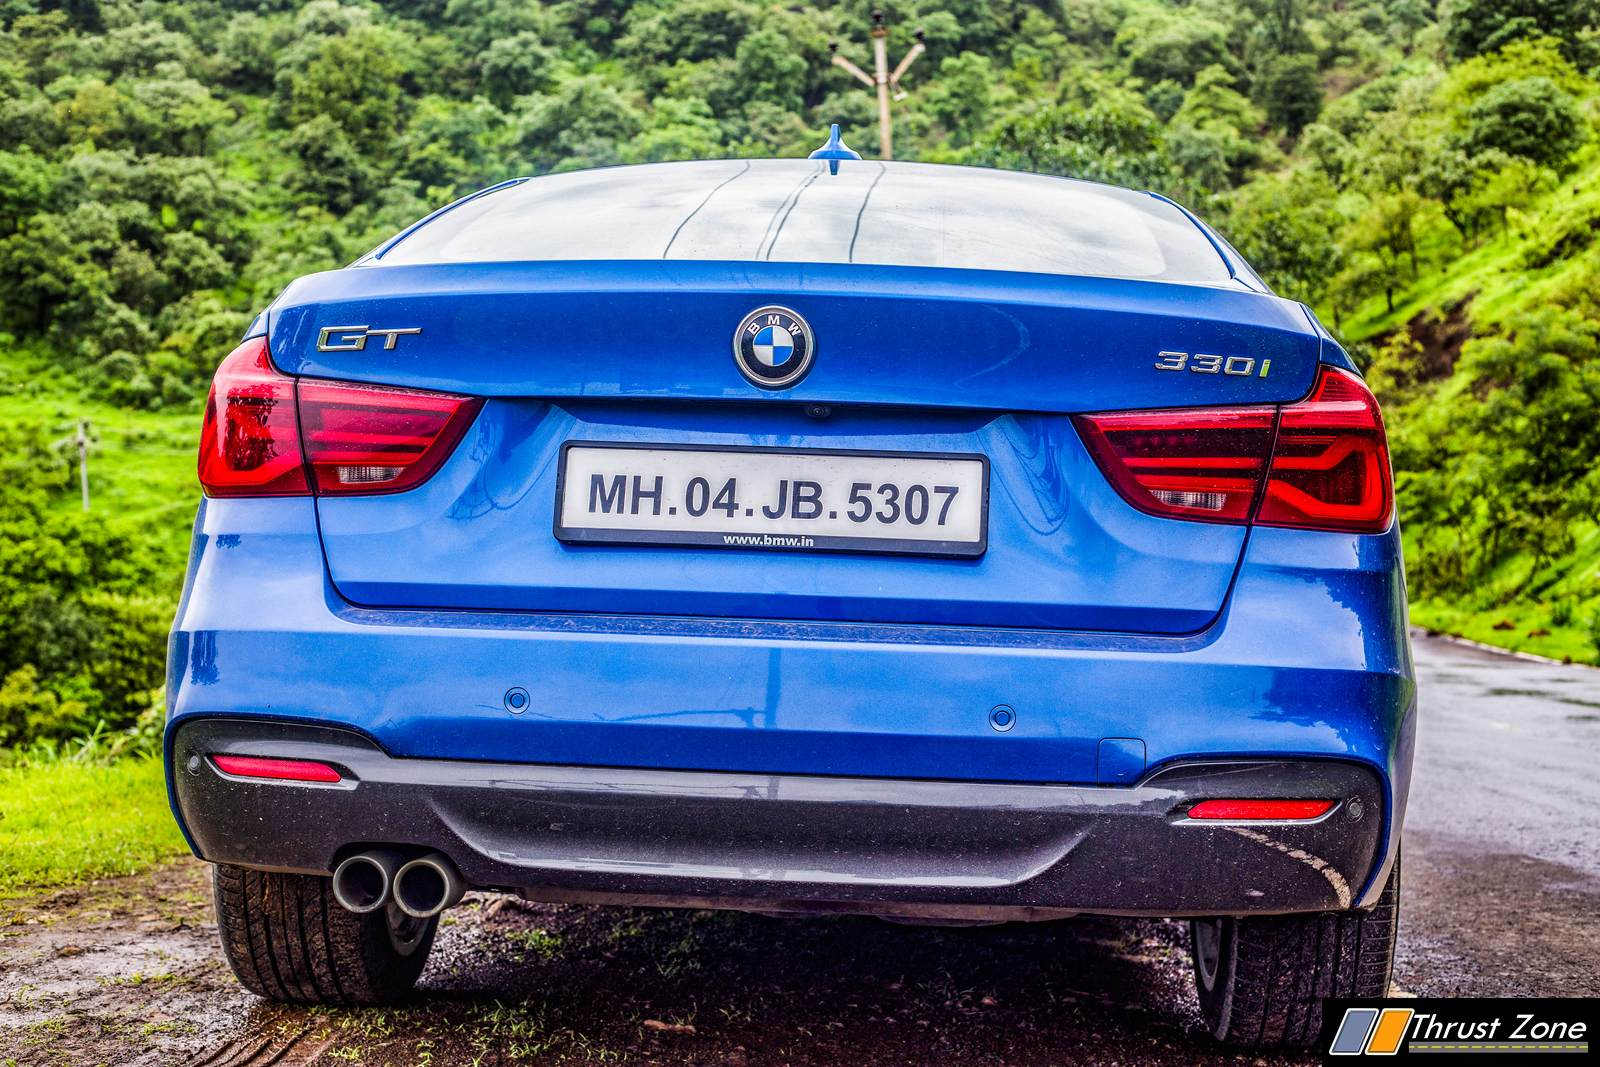 https://www.thrustzone.com/wp-content/uploads/2018/08/BMW-330i-GT-India-Review-3.jpg